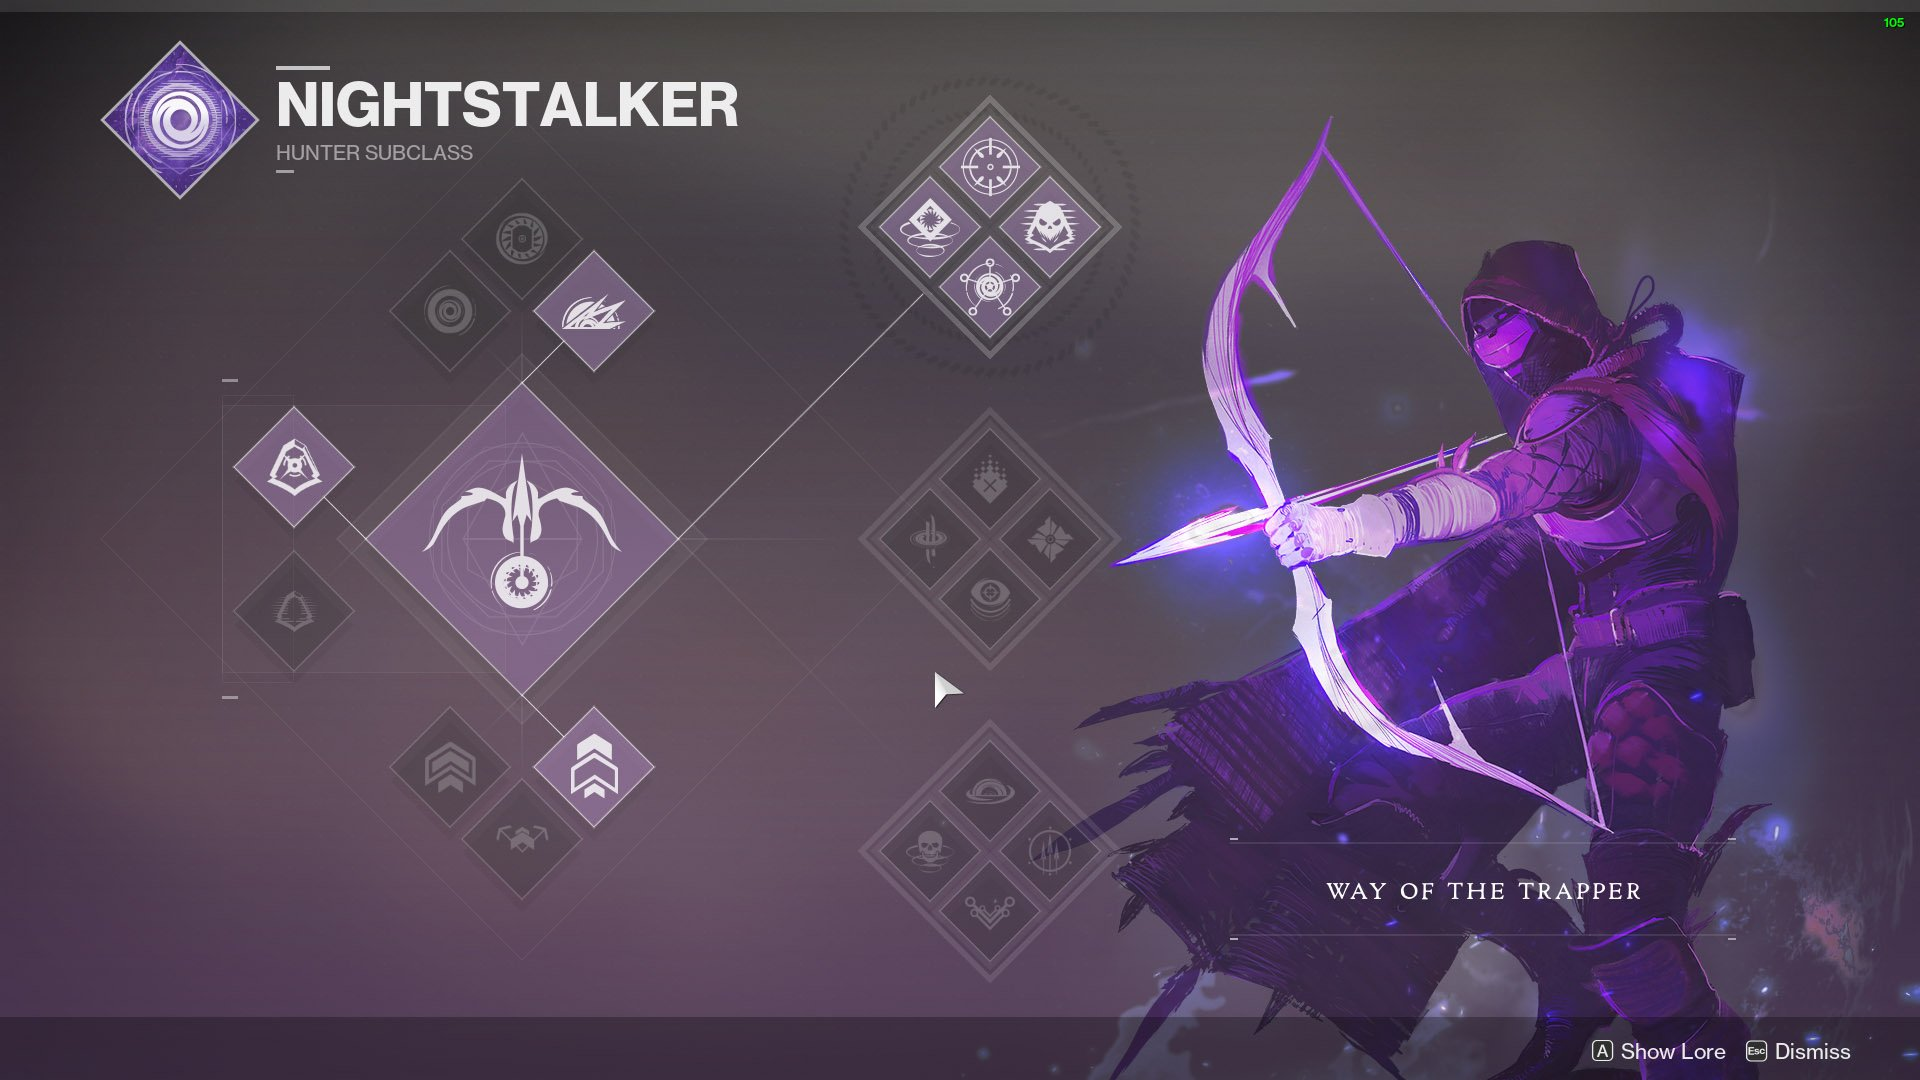 destiny 2 hunter nightstalker